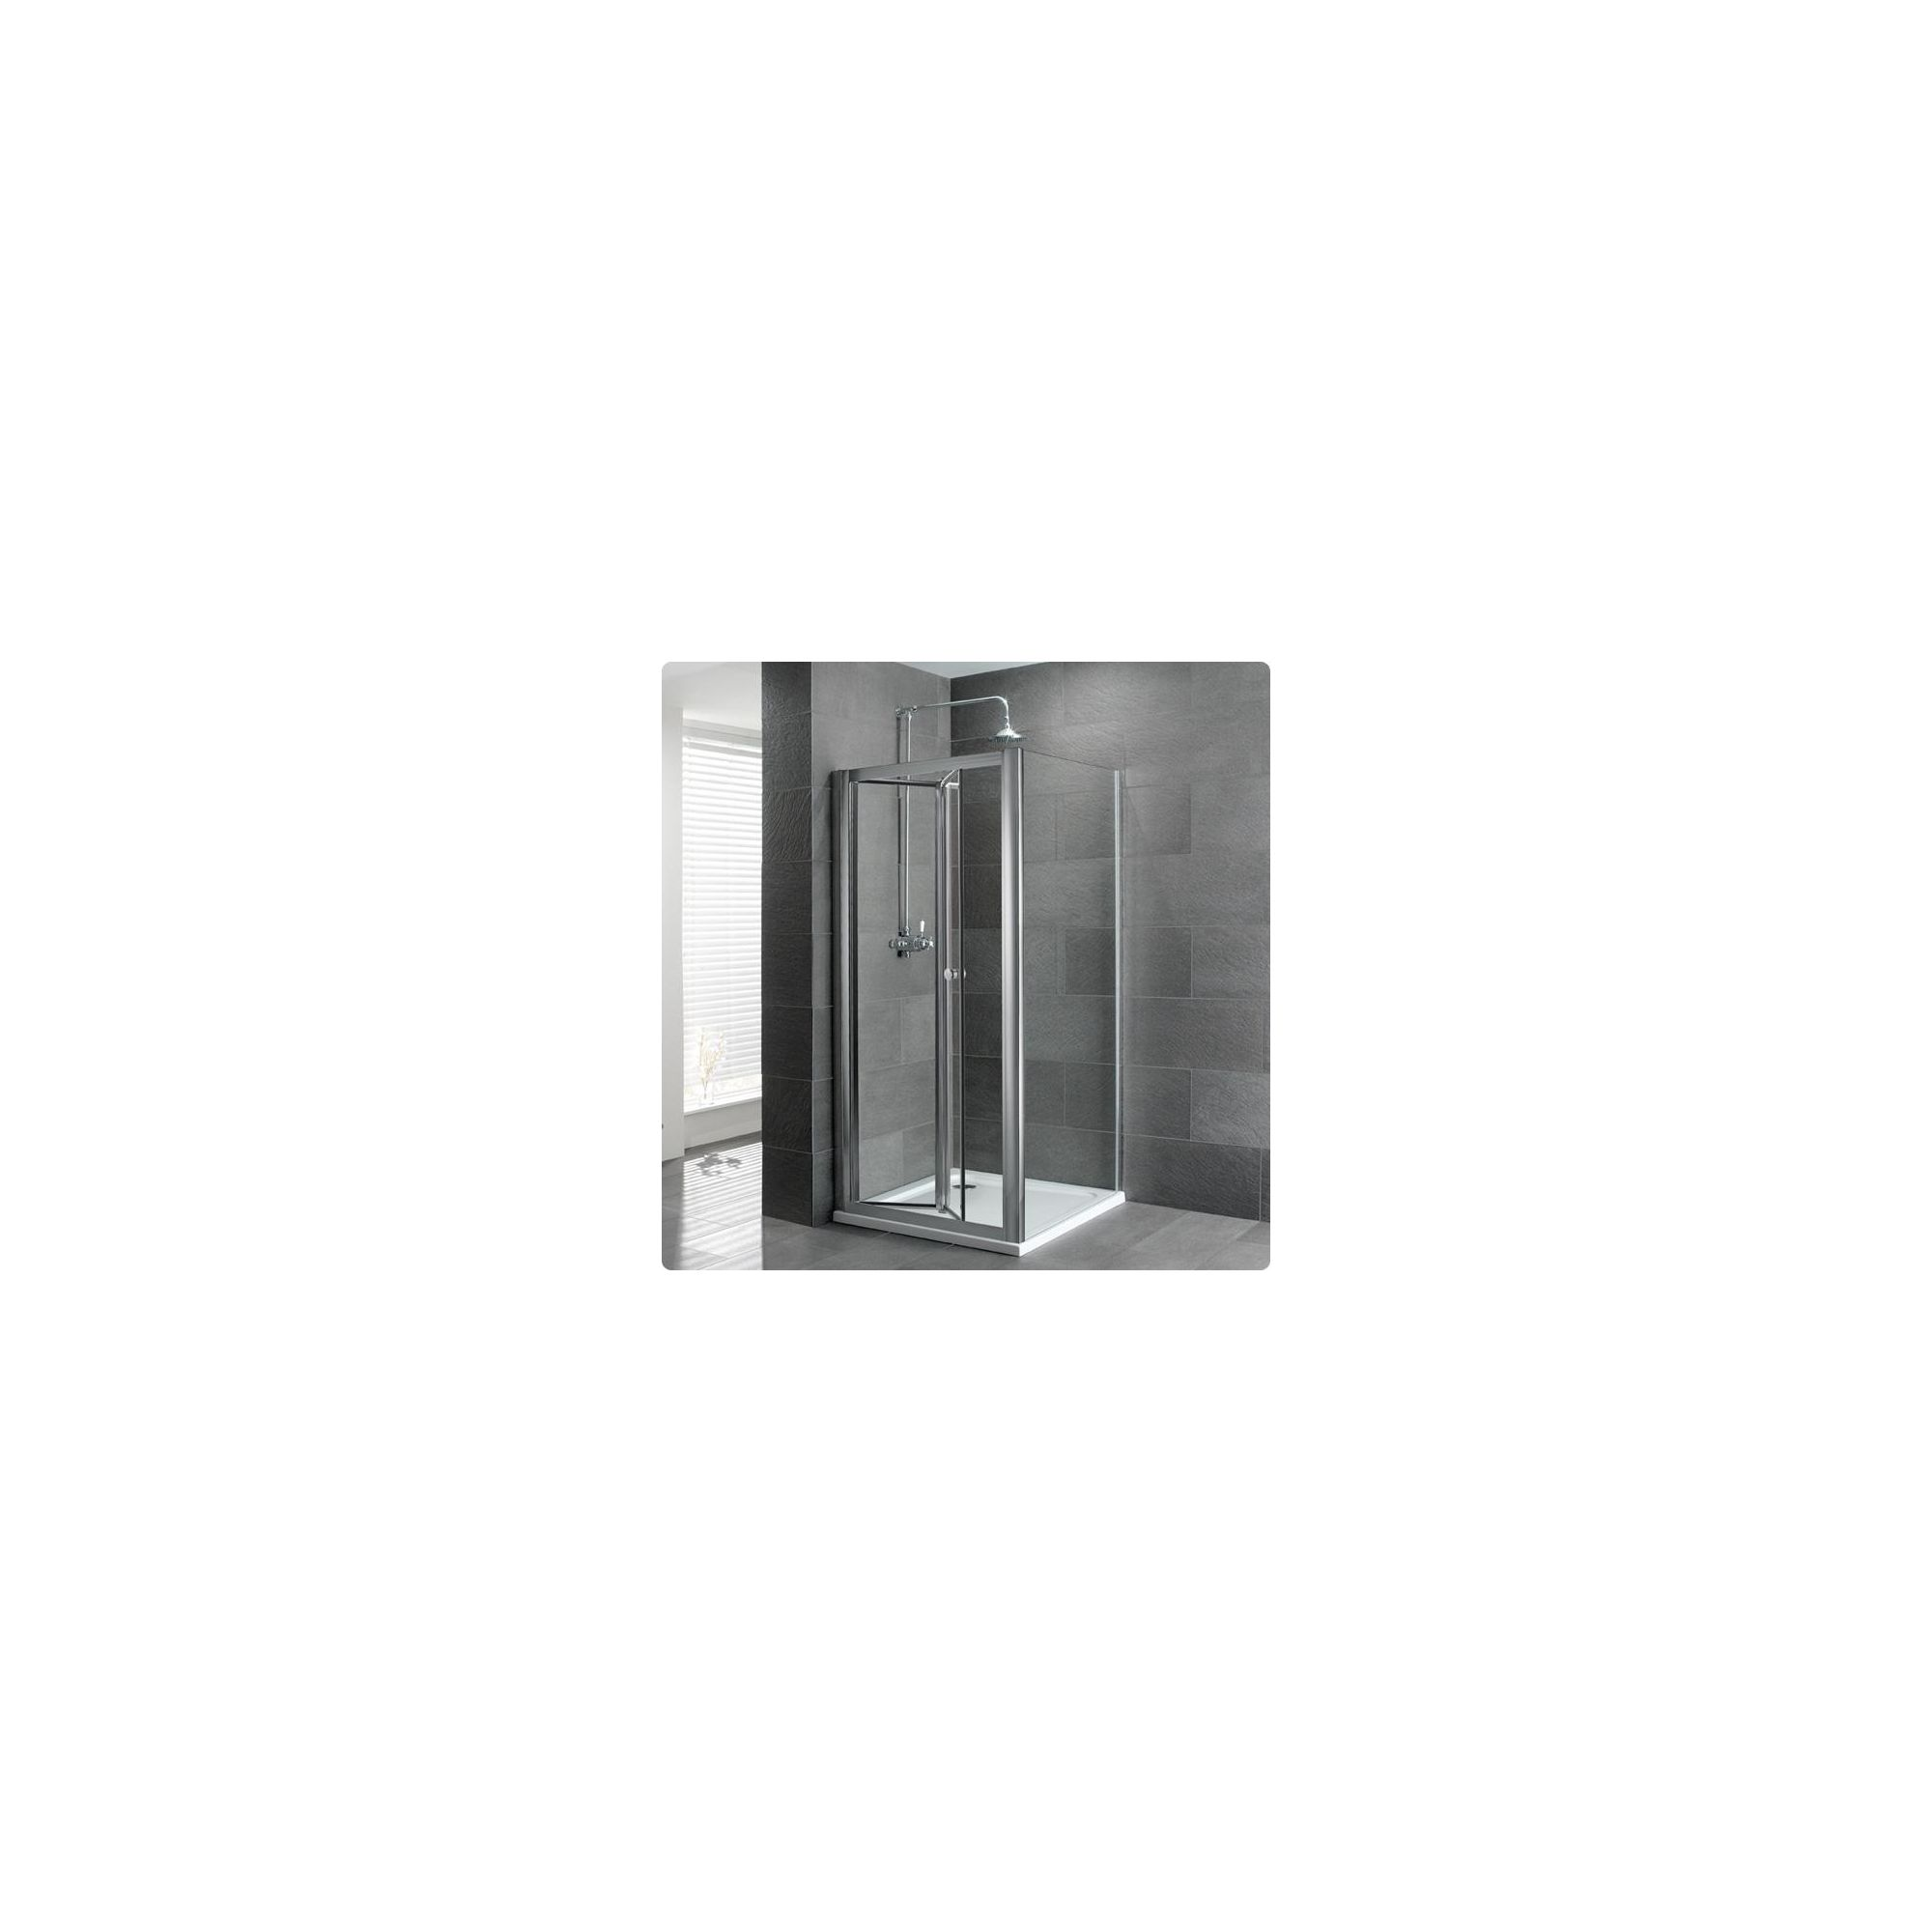 Duchy Select Silver Bi-Fold Door Shower Enclosure, 900mm x 900mm, Standard Tray, 6mm Glass at Tesco Direct